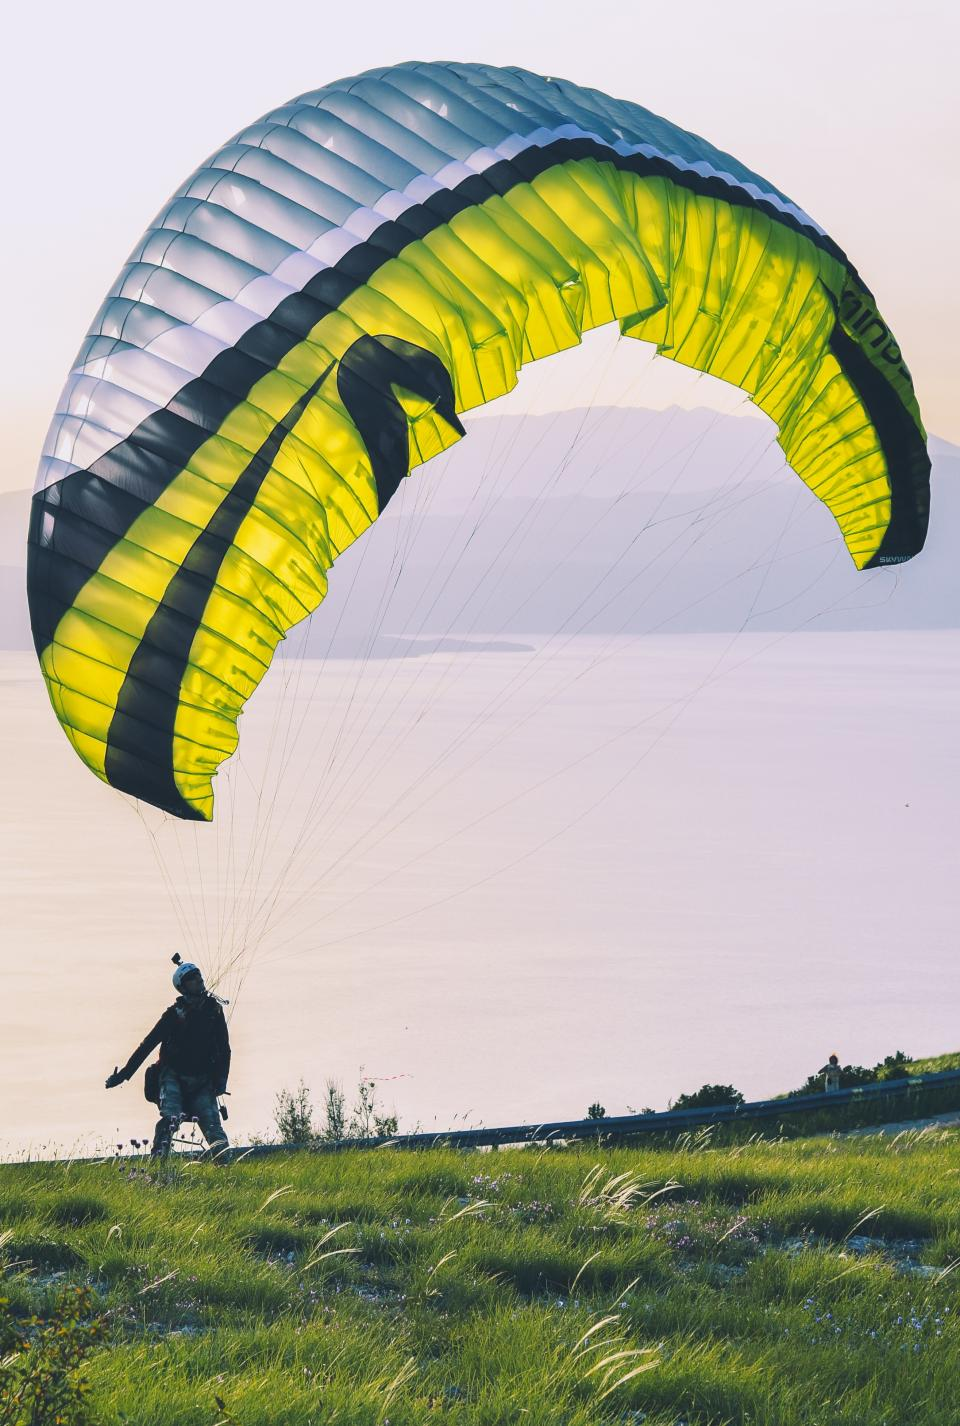 air, sports, paragliding, green, grass, highland, people, man, adventure, outdoor, sky, sunny, day